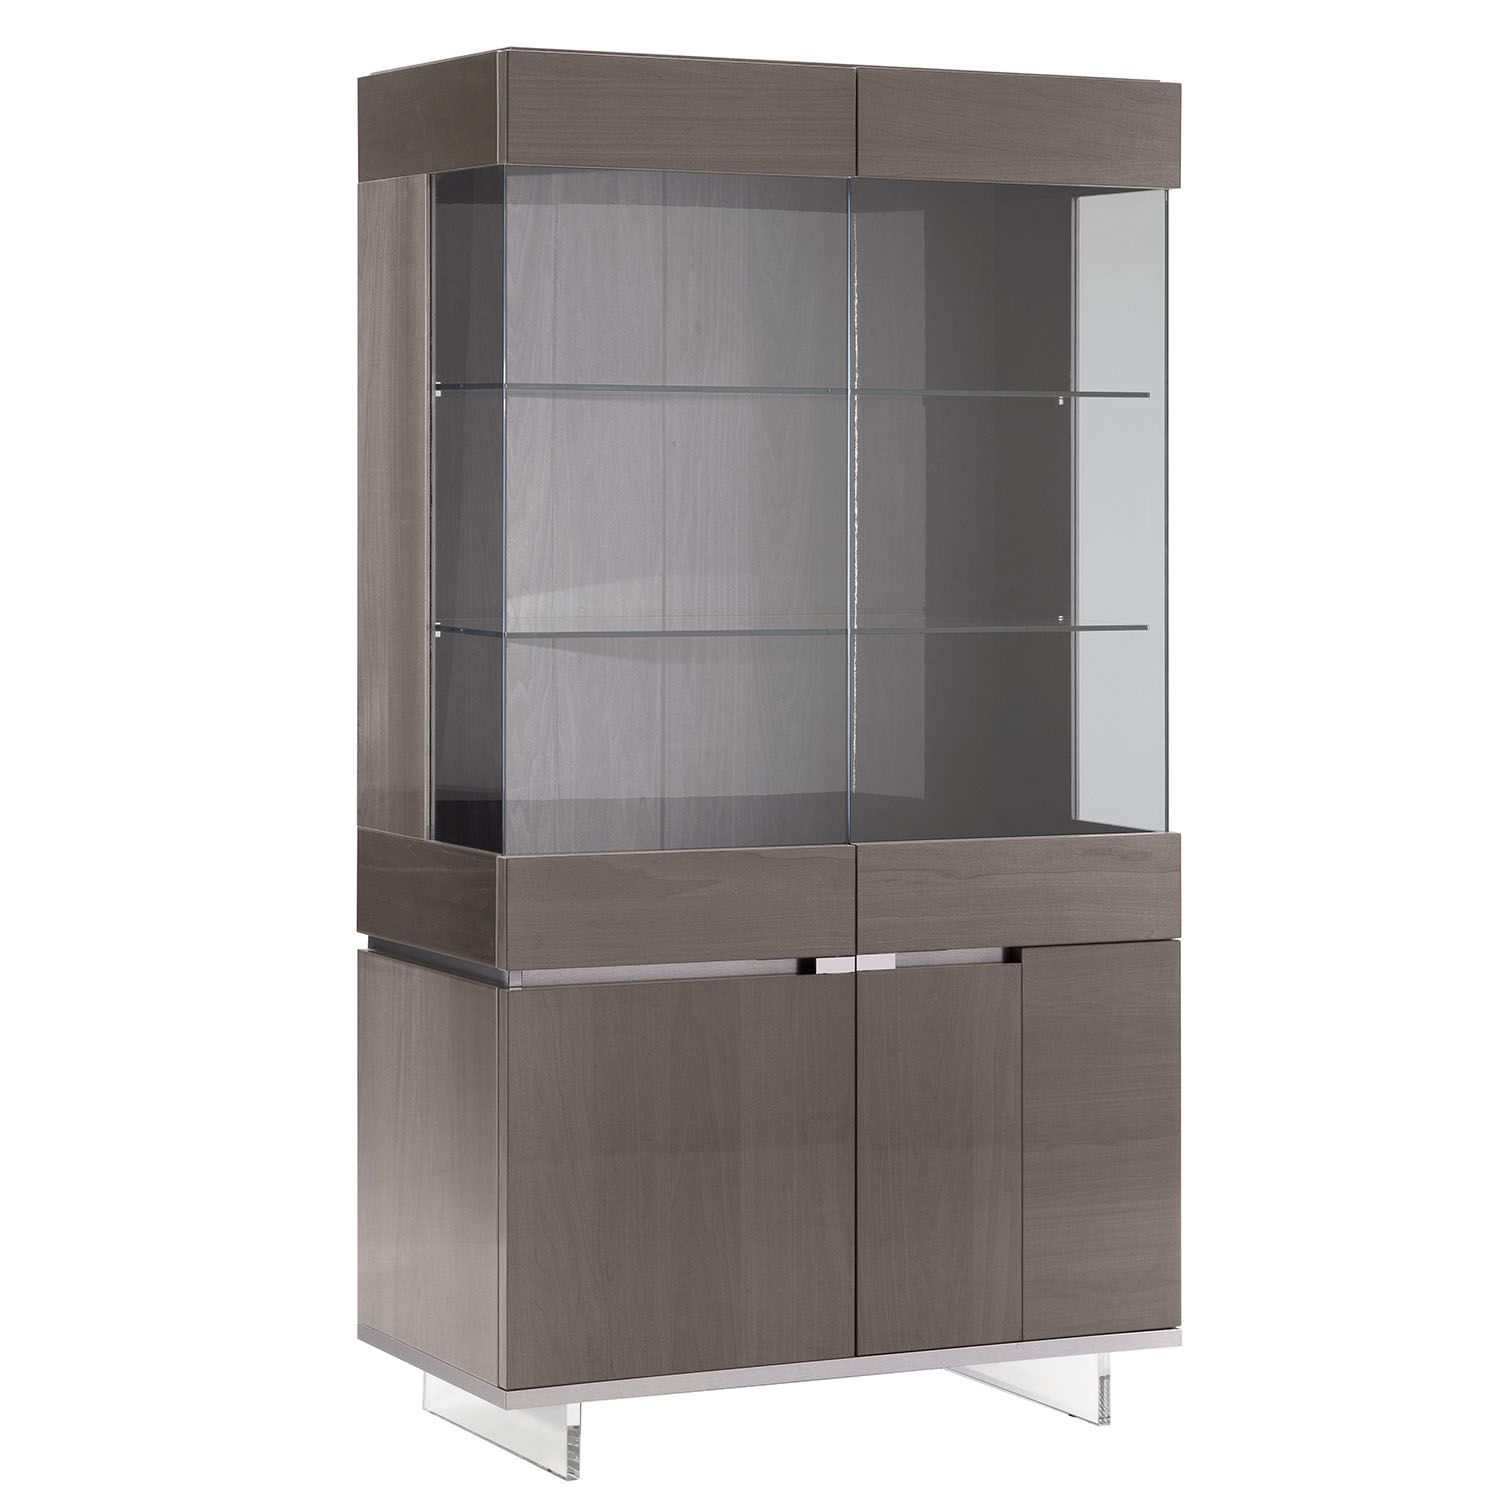 Mercury 2 Door High Gloss Display Cabinet